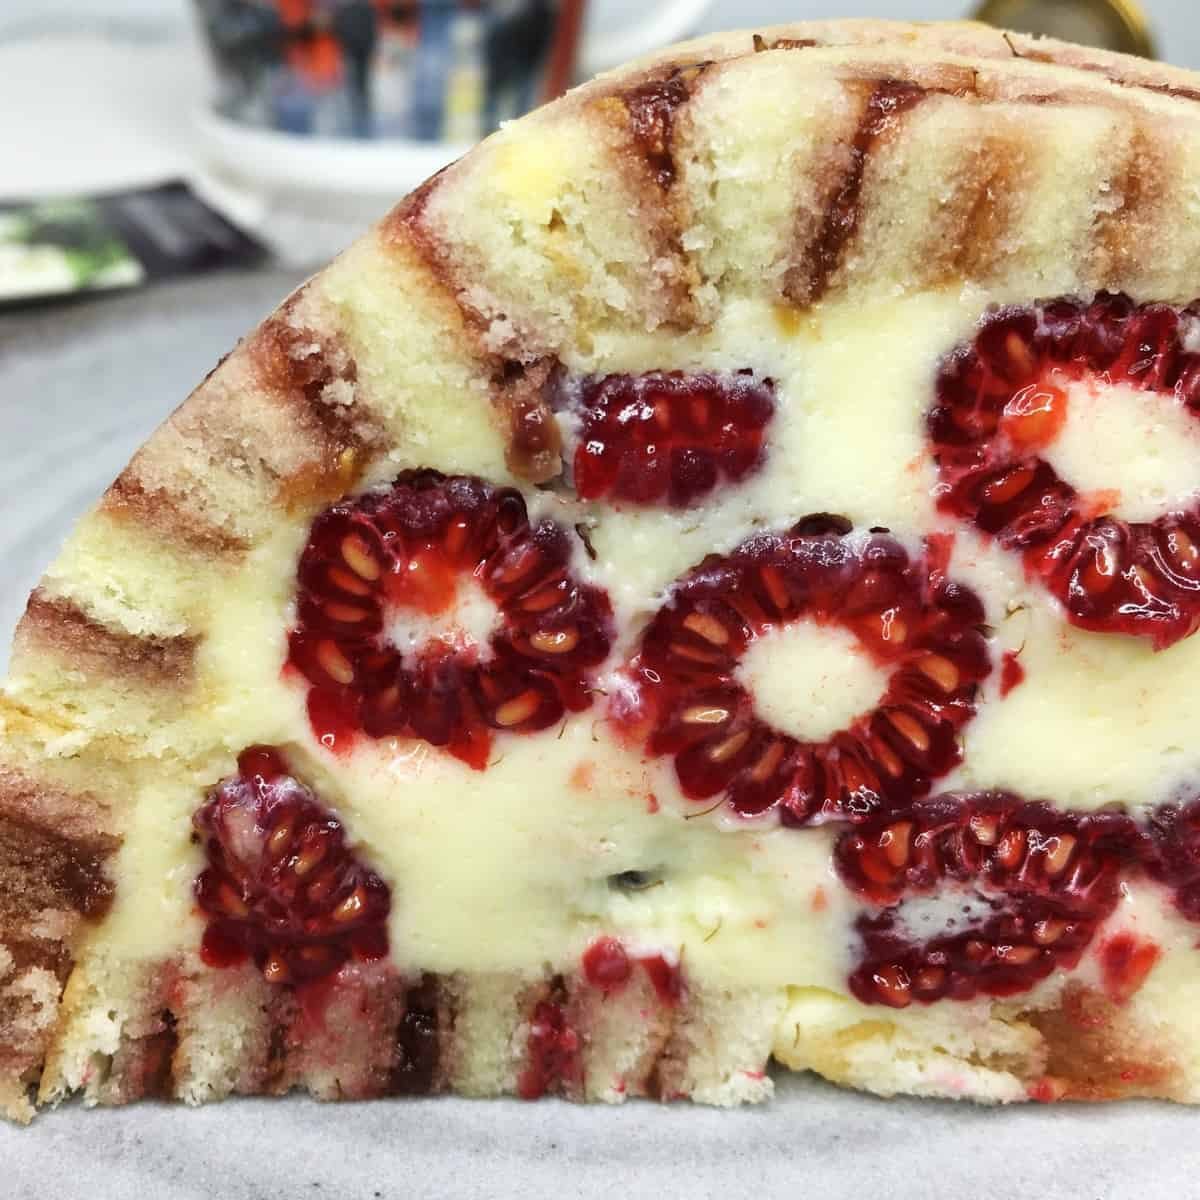 A slice of Charlotte Royale cake packed with fresh raspberries on a grey plate: Close up